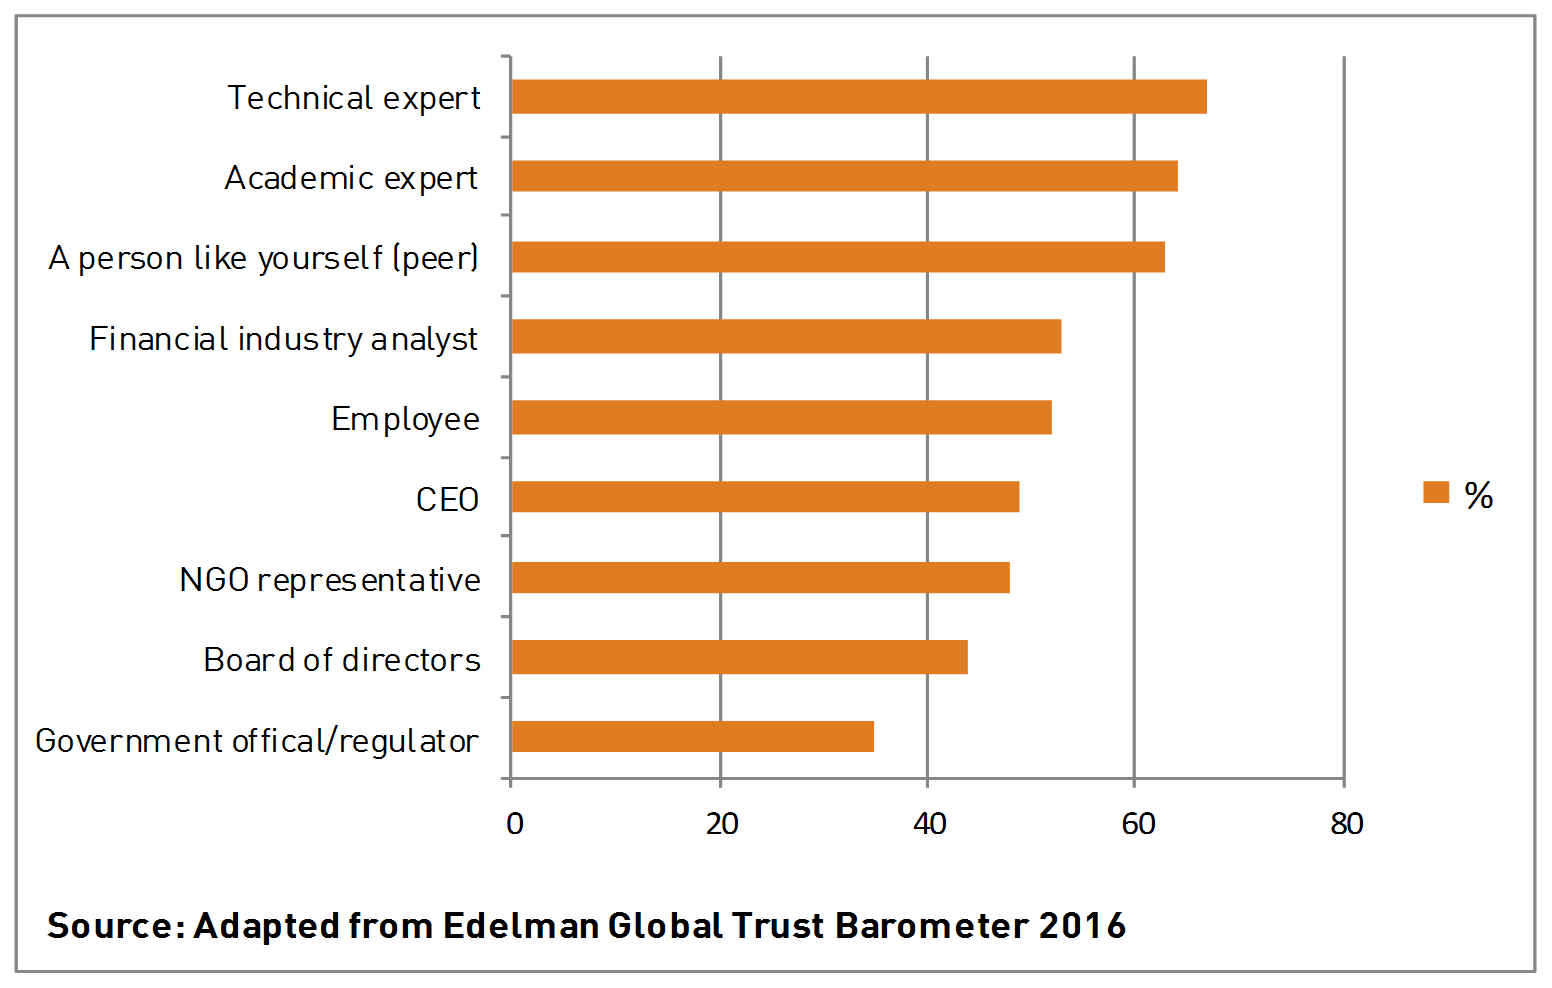 Source: Edelman Global Trust Barometer 2016